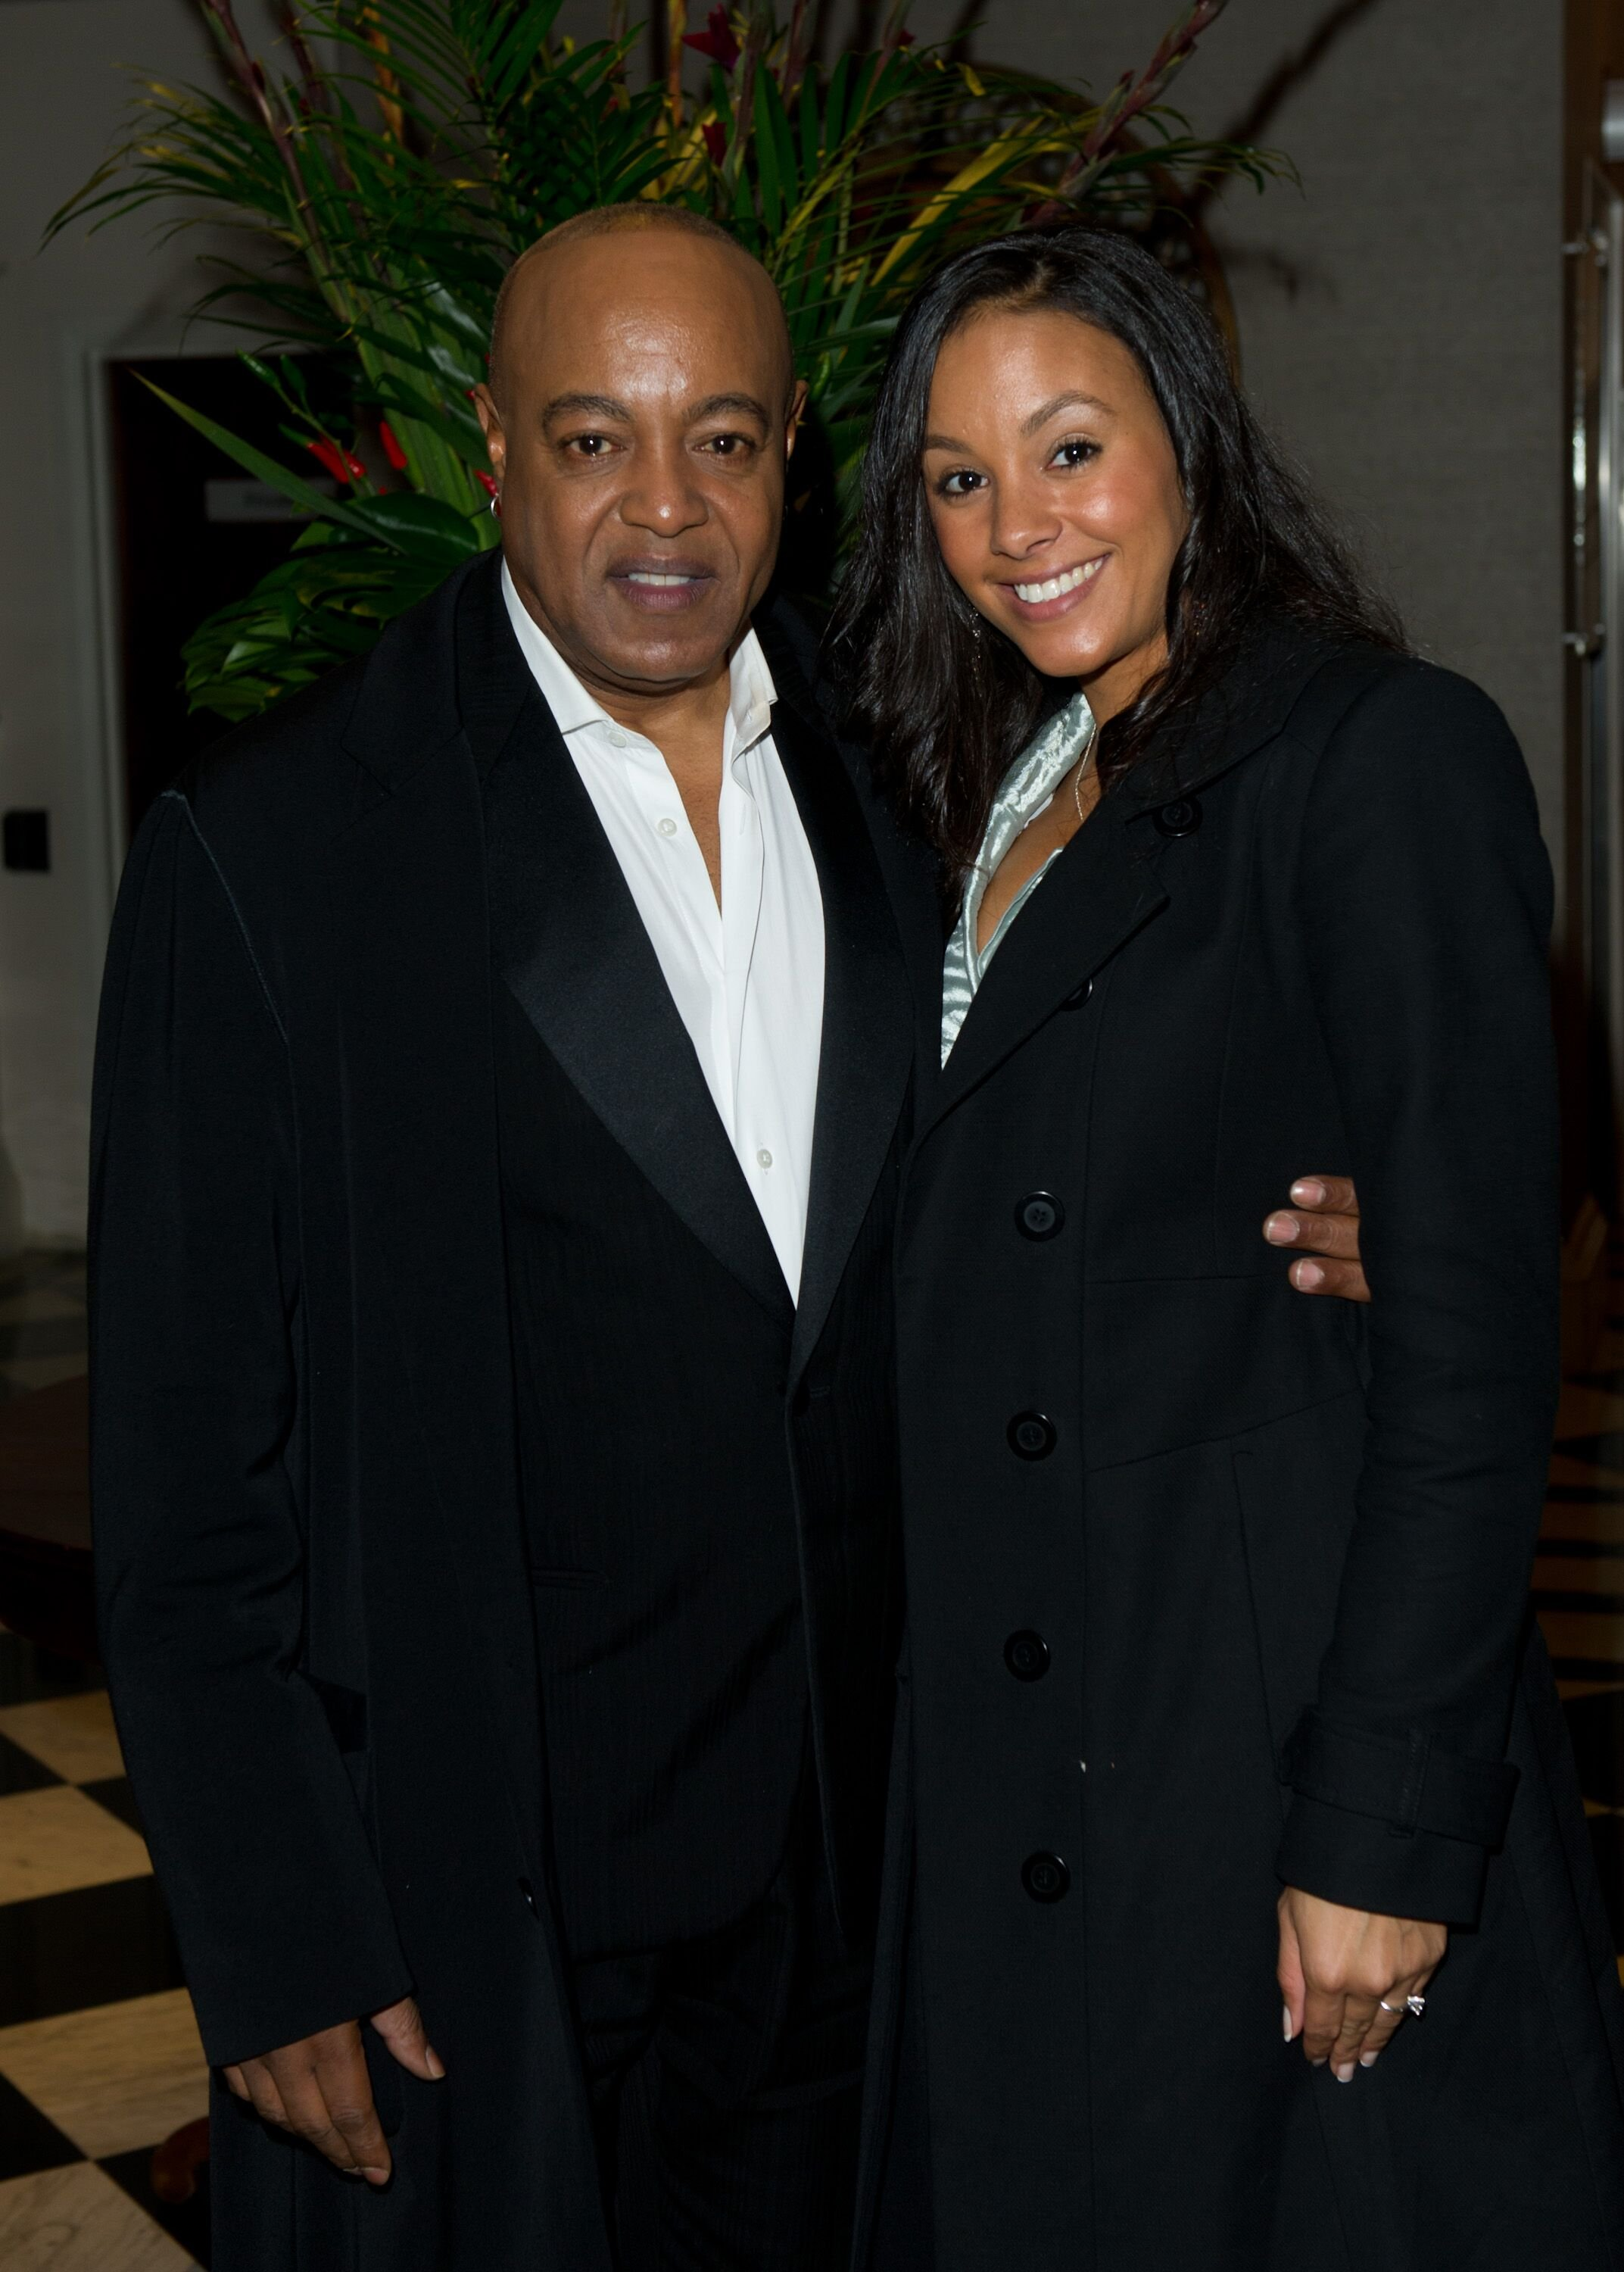 R&B legend Peabo Bryson and his wife Tanya Boniface-Bryson/ Source: Getty Images